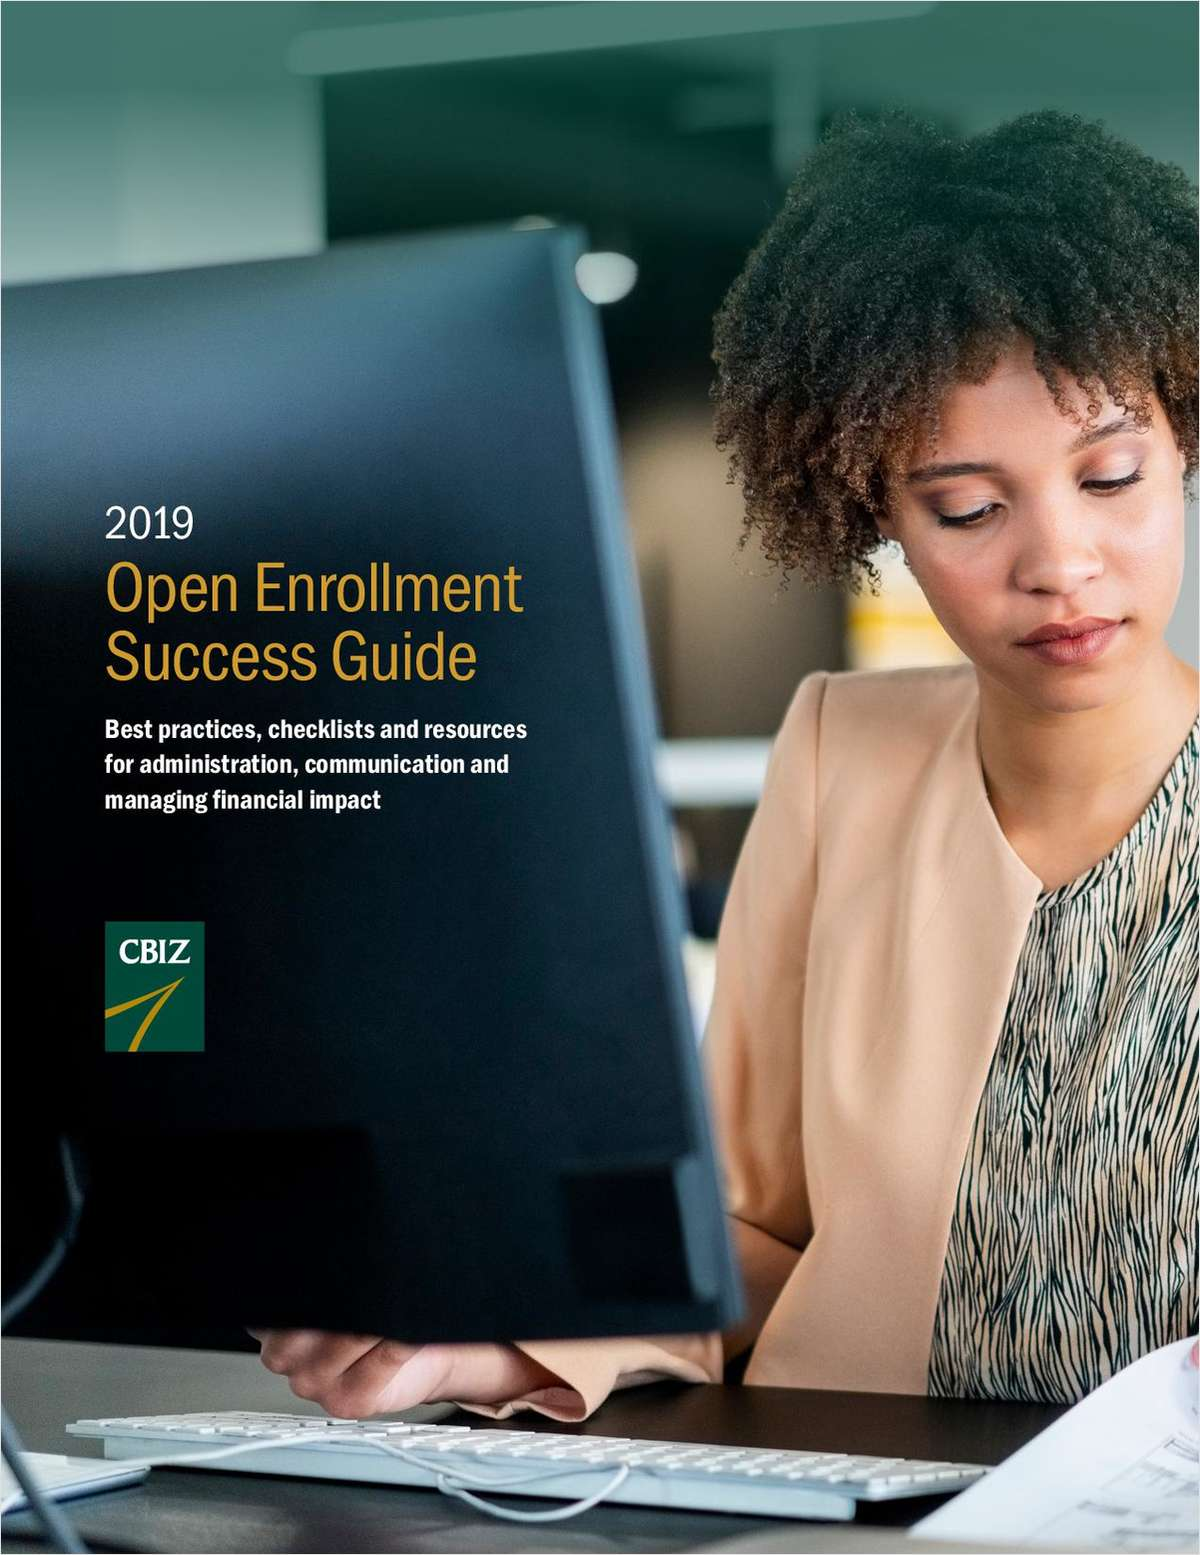 2019 Open Enrollment Success Guide